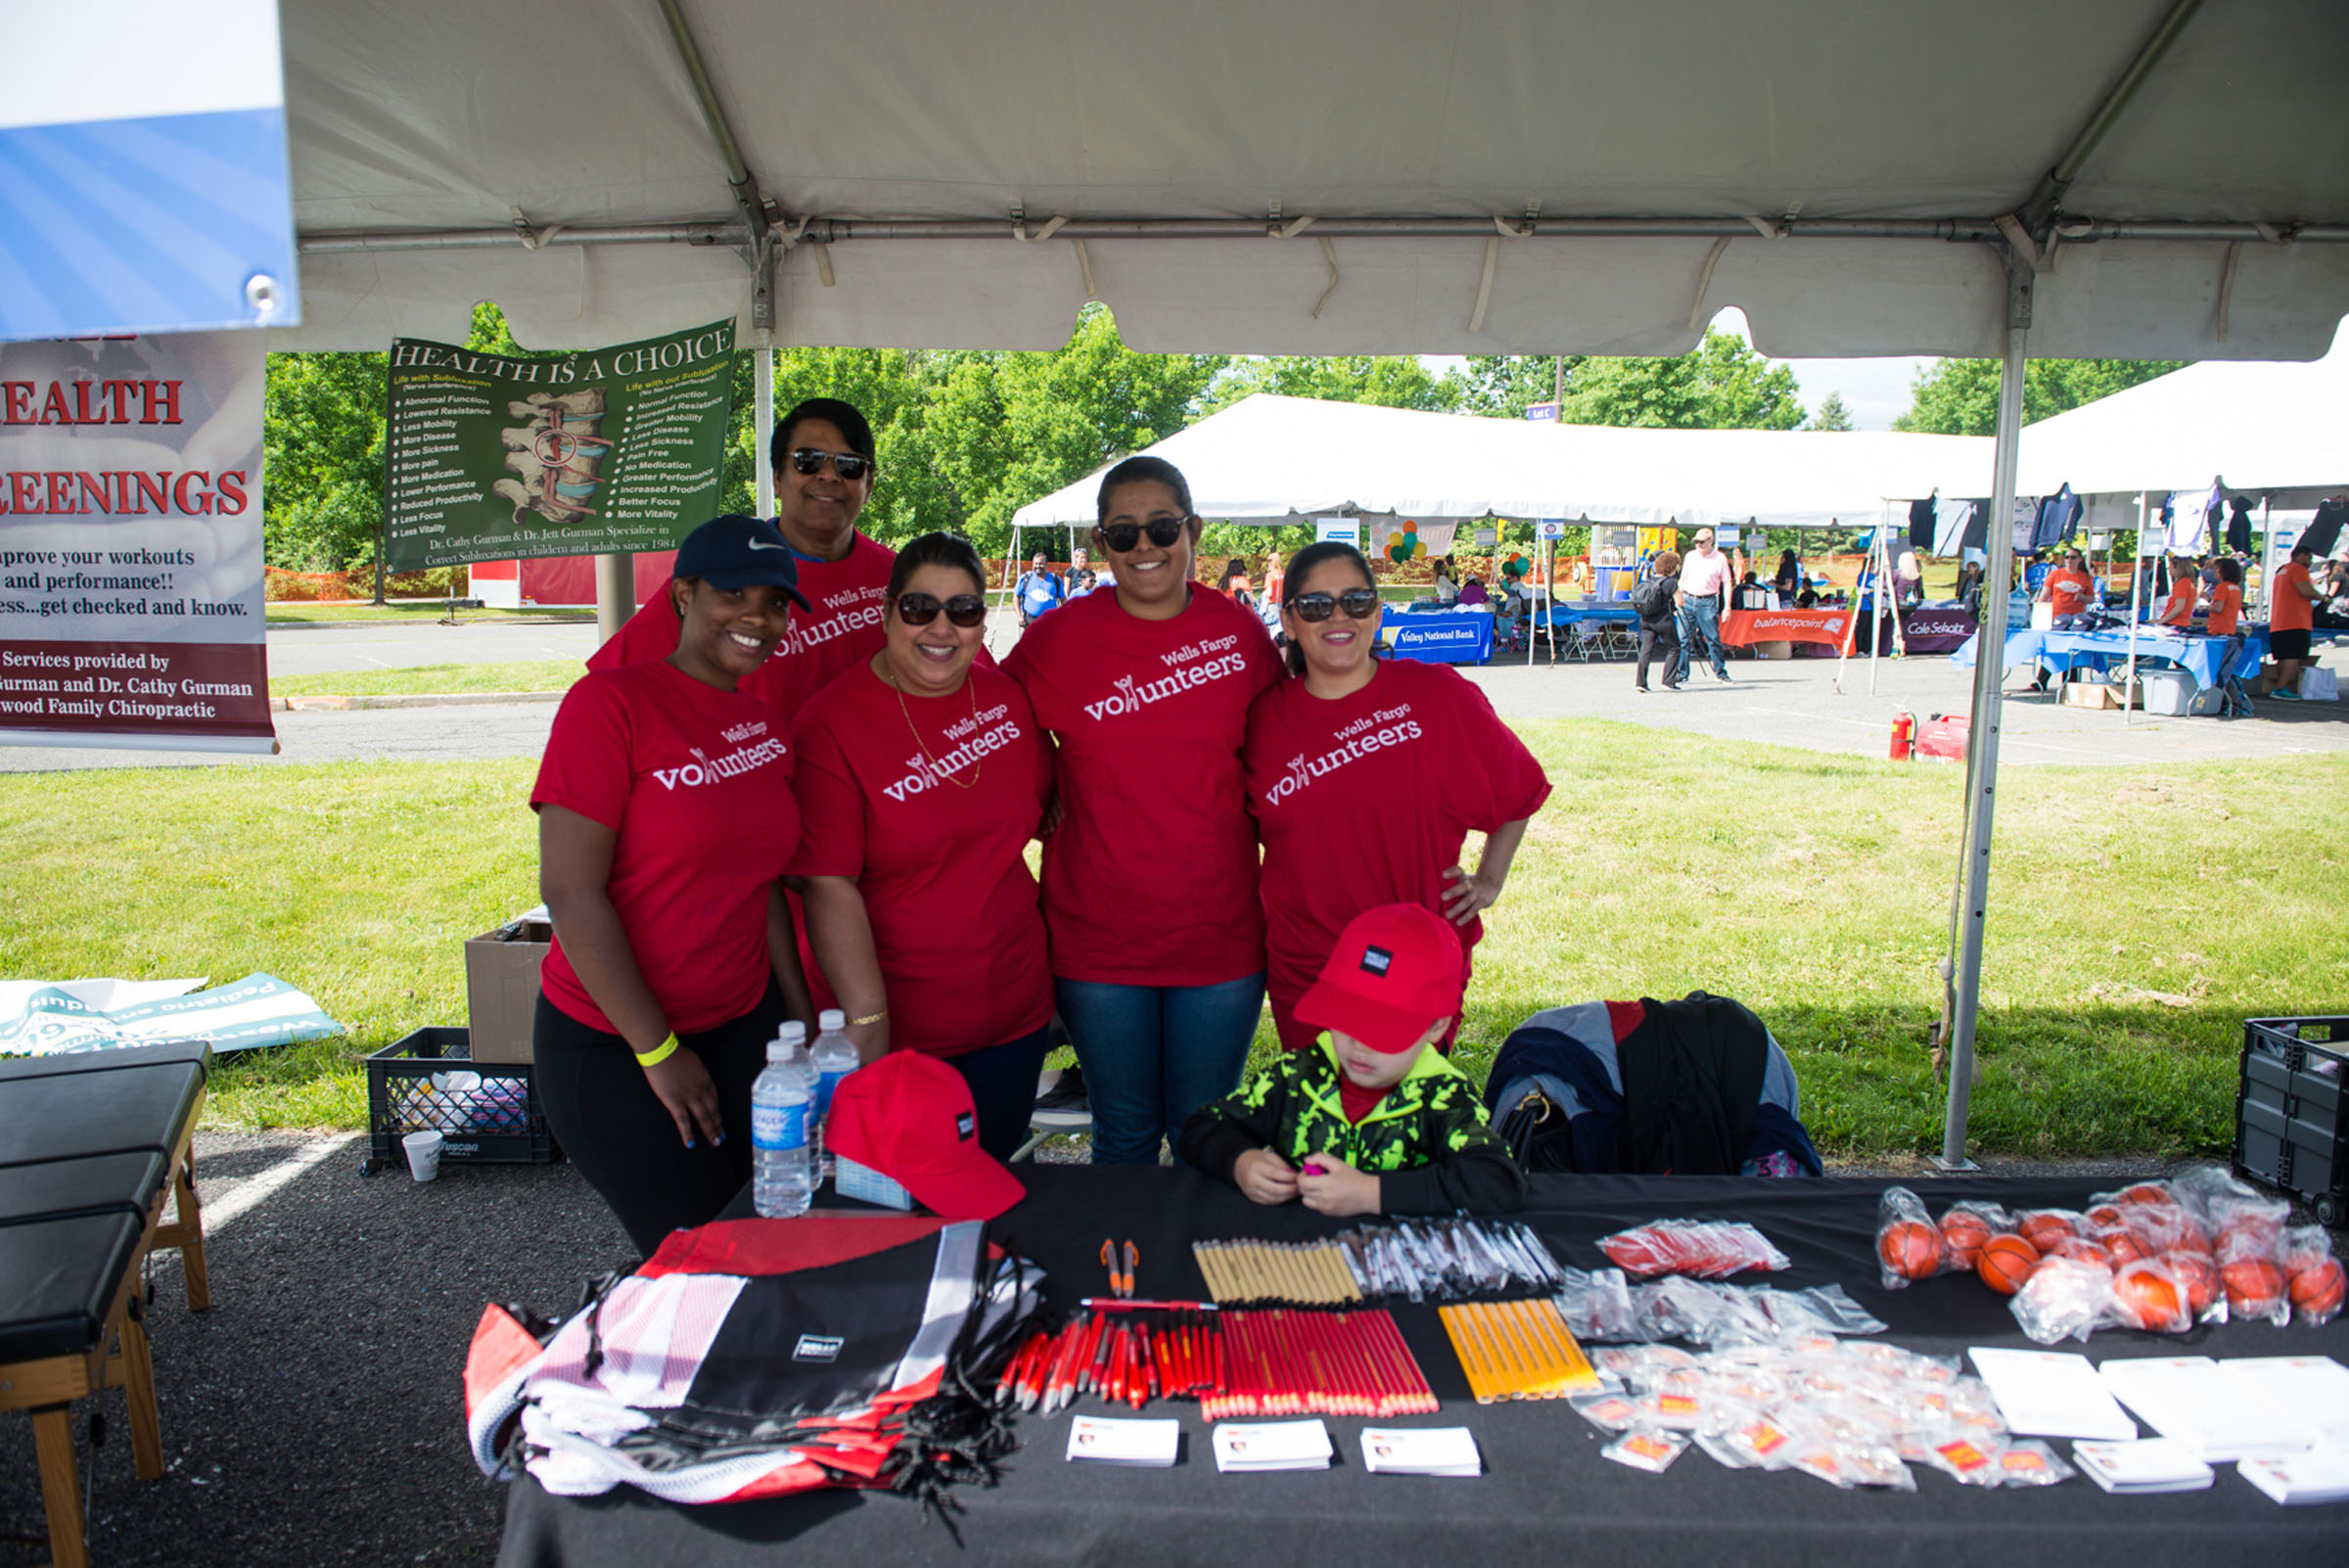 2017-06-04 GTD4A Charity Bike Ride - BCC - Paramus NJ-2119.jpg